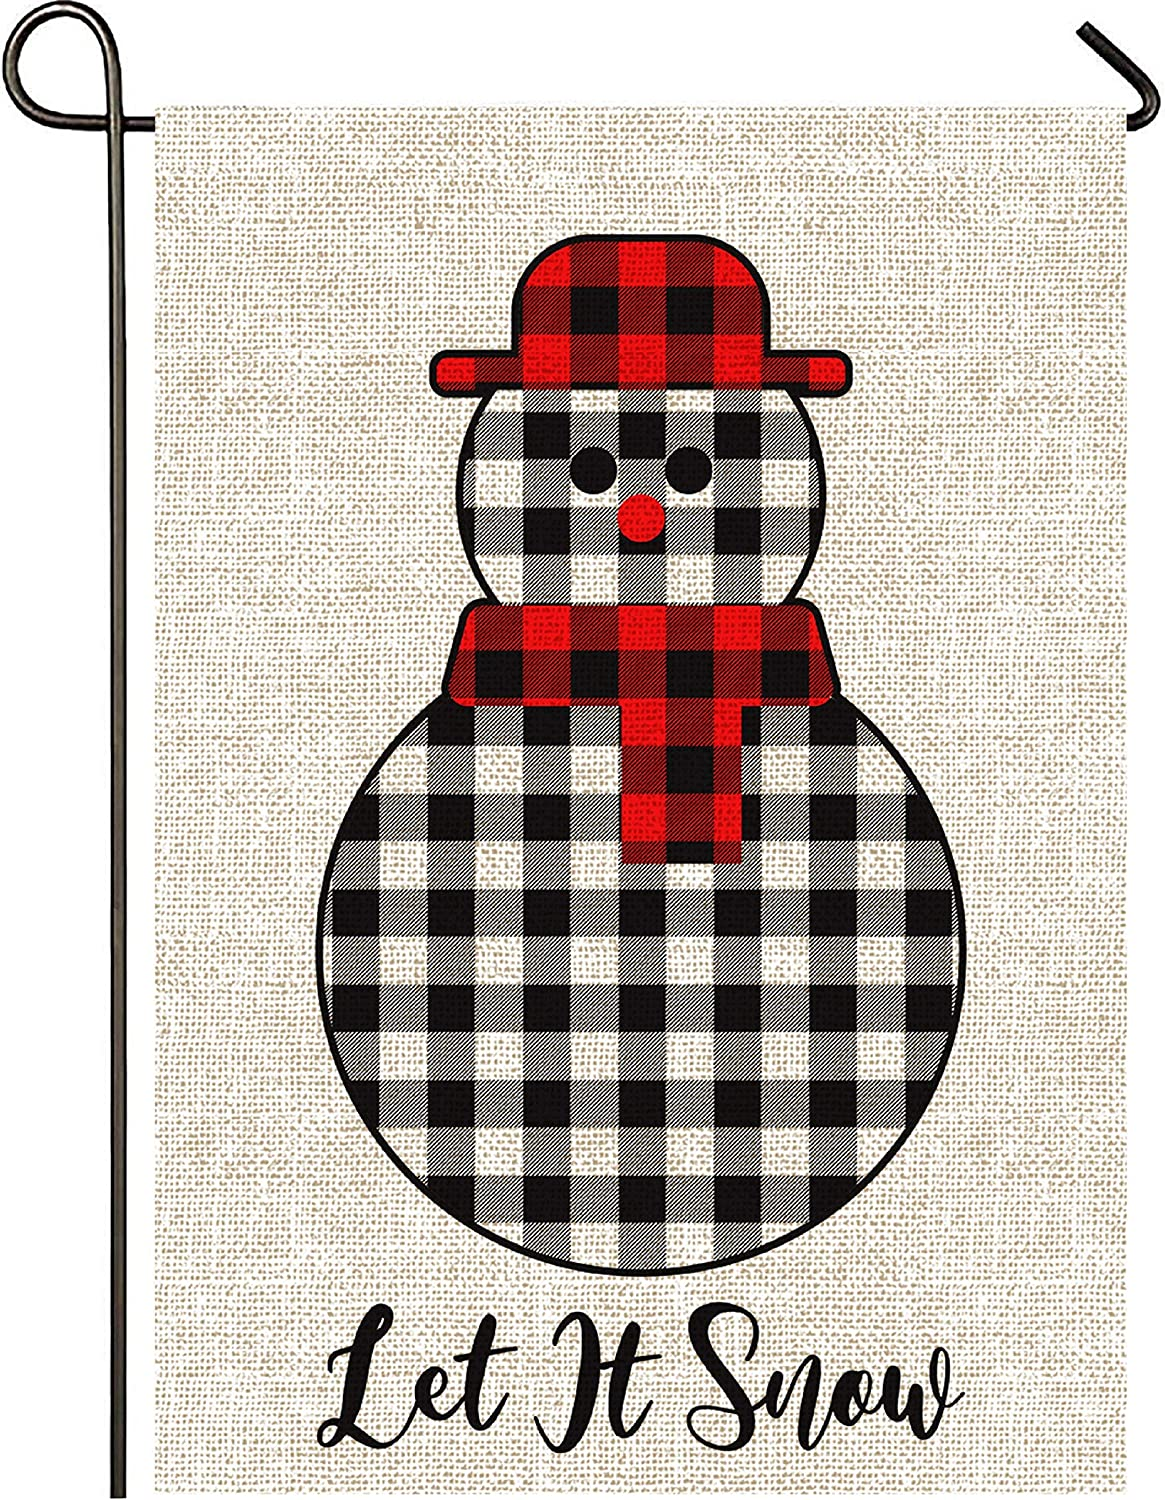 Mogarden Winter Snowman Christmas Garden Flag, Double Sided, 12.5 x 18 Inches, Burlap Small Let It Snow Yard Flag